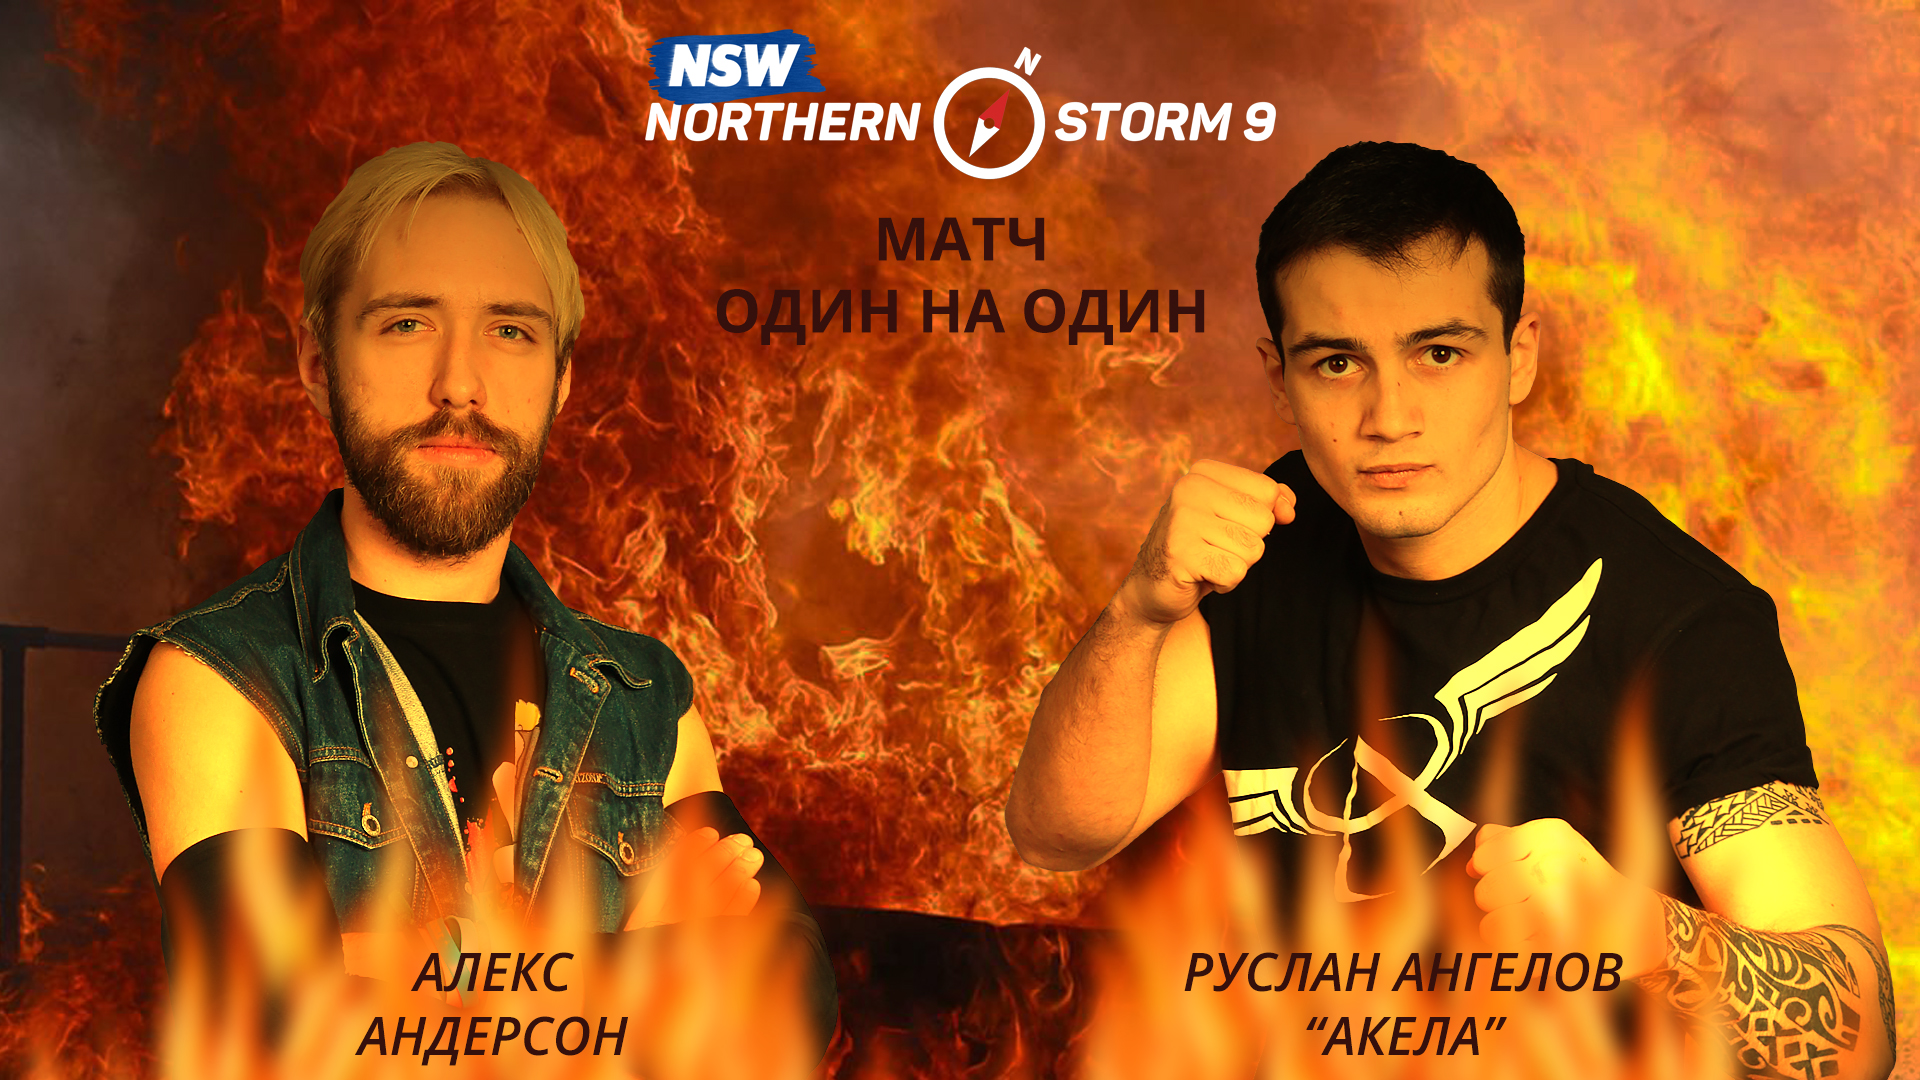 NSW Northern Storm 9: Алекс Андерсон против Руслана